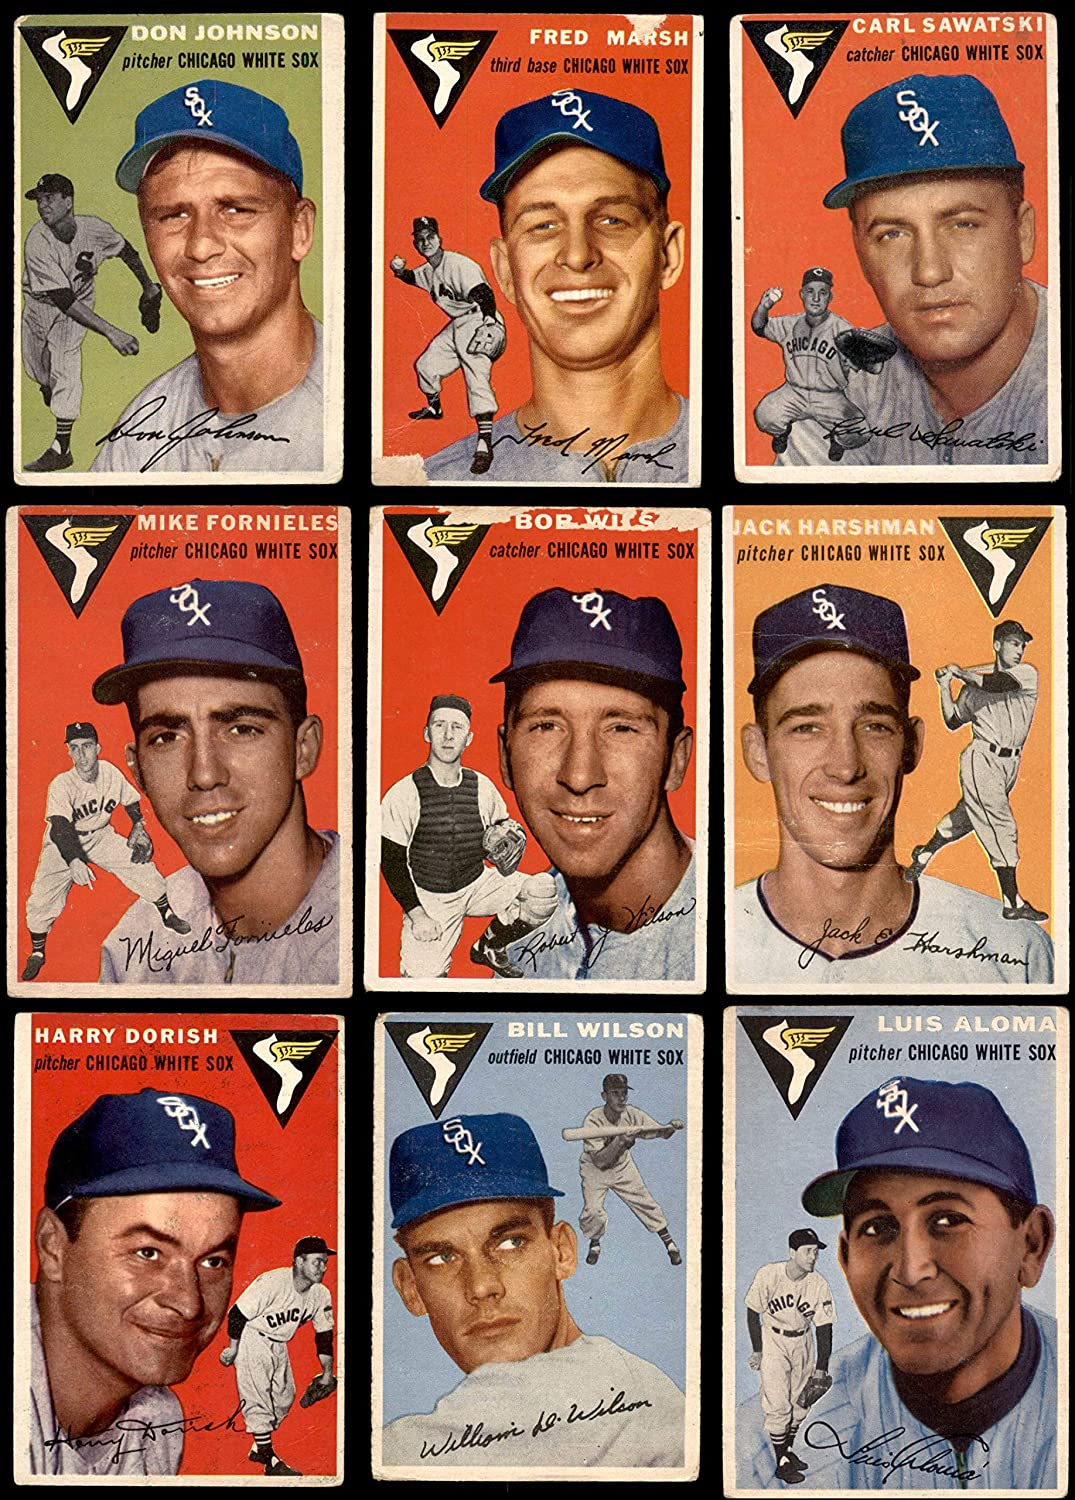 1954 Topps Chicago White Sox Team Set Chicago White Sox (Baseball Set) Dean's Cards 2 - GOOD White Sox 91m8gOMbnILSL1500_